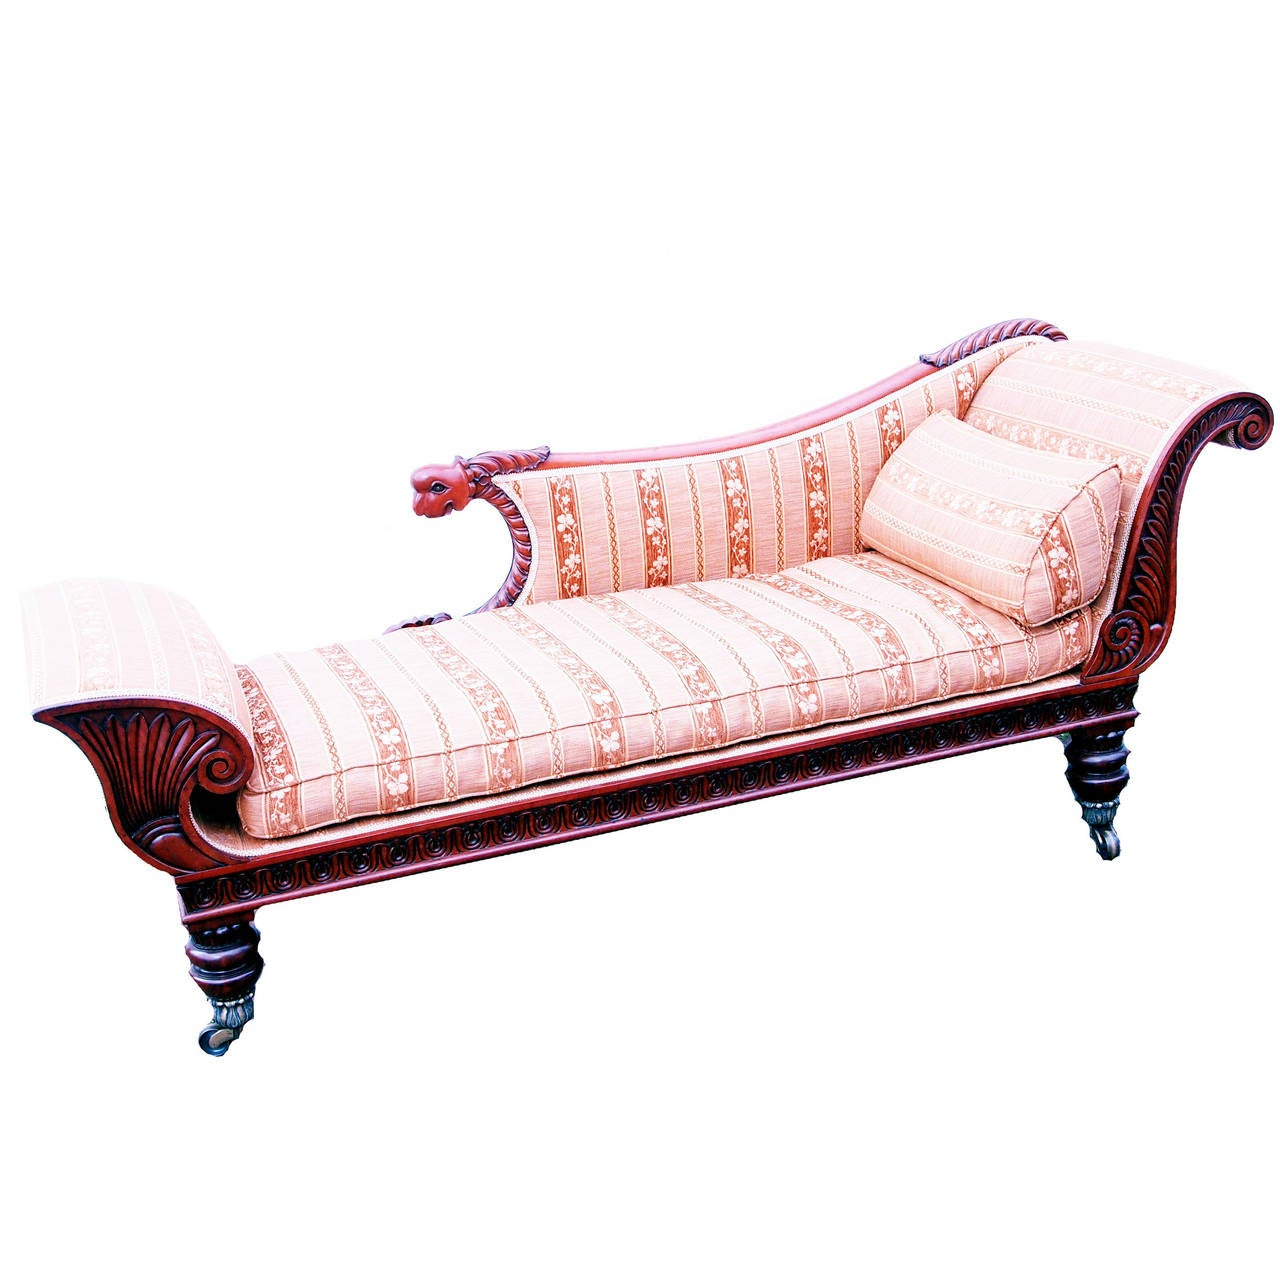 Antique regency period mahogany chaise longue at 1stdibs for Chaise longue antique